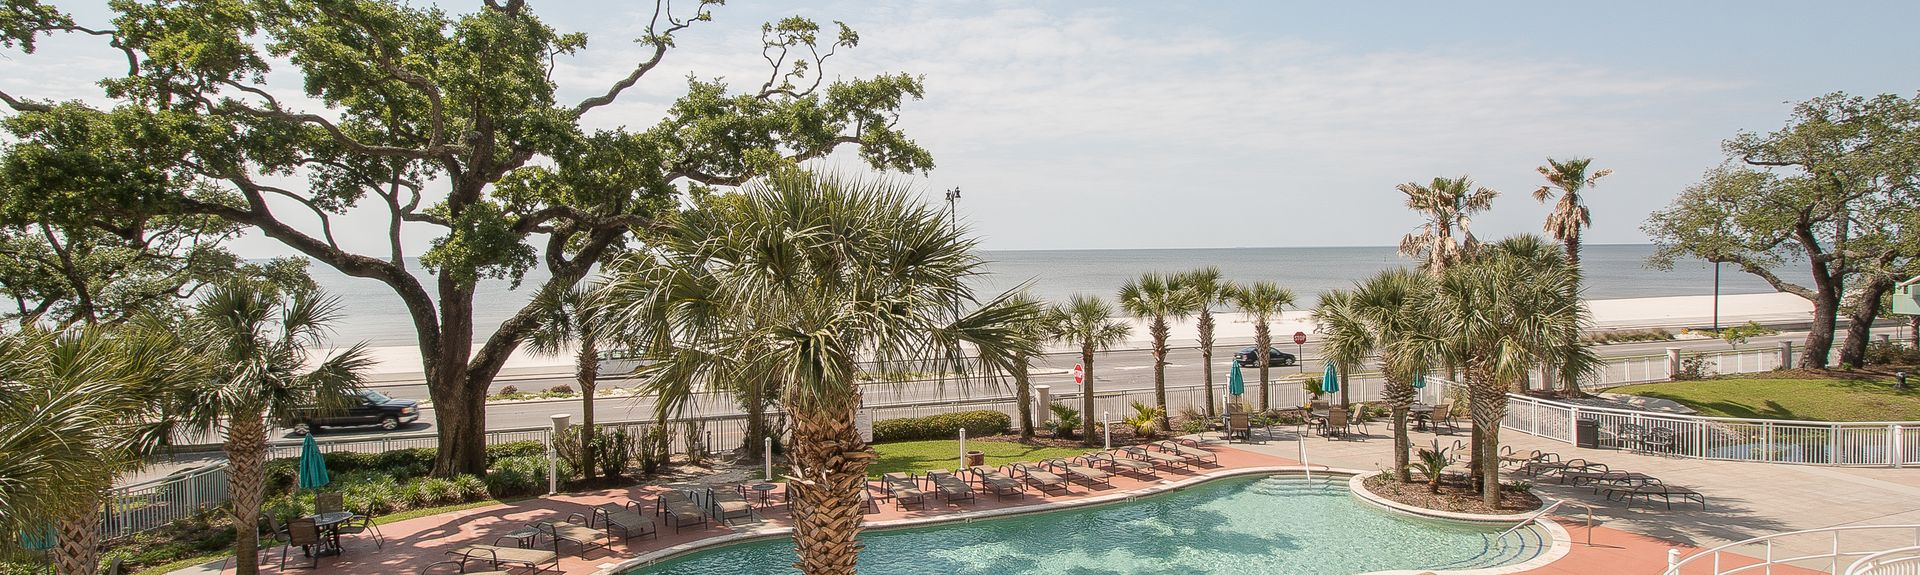 Mississippi Coast Coliseum and Convention Center, Biloxi, MS, USA